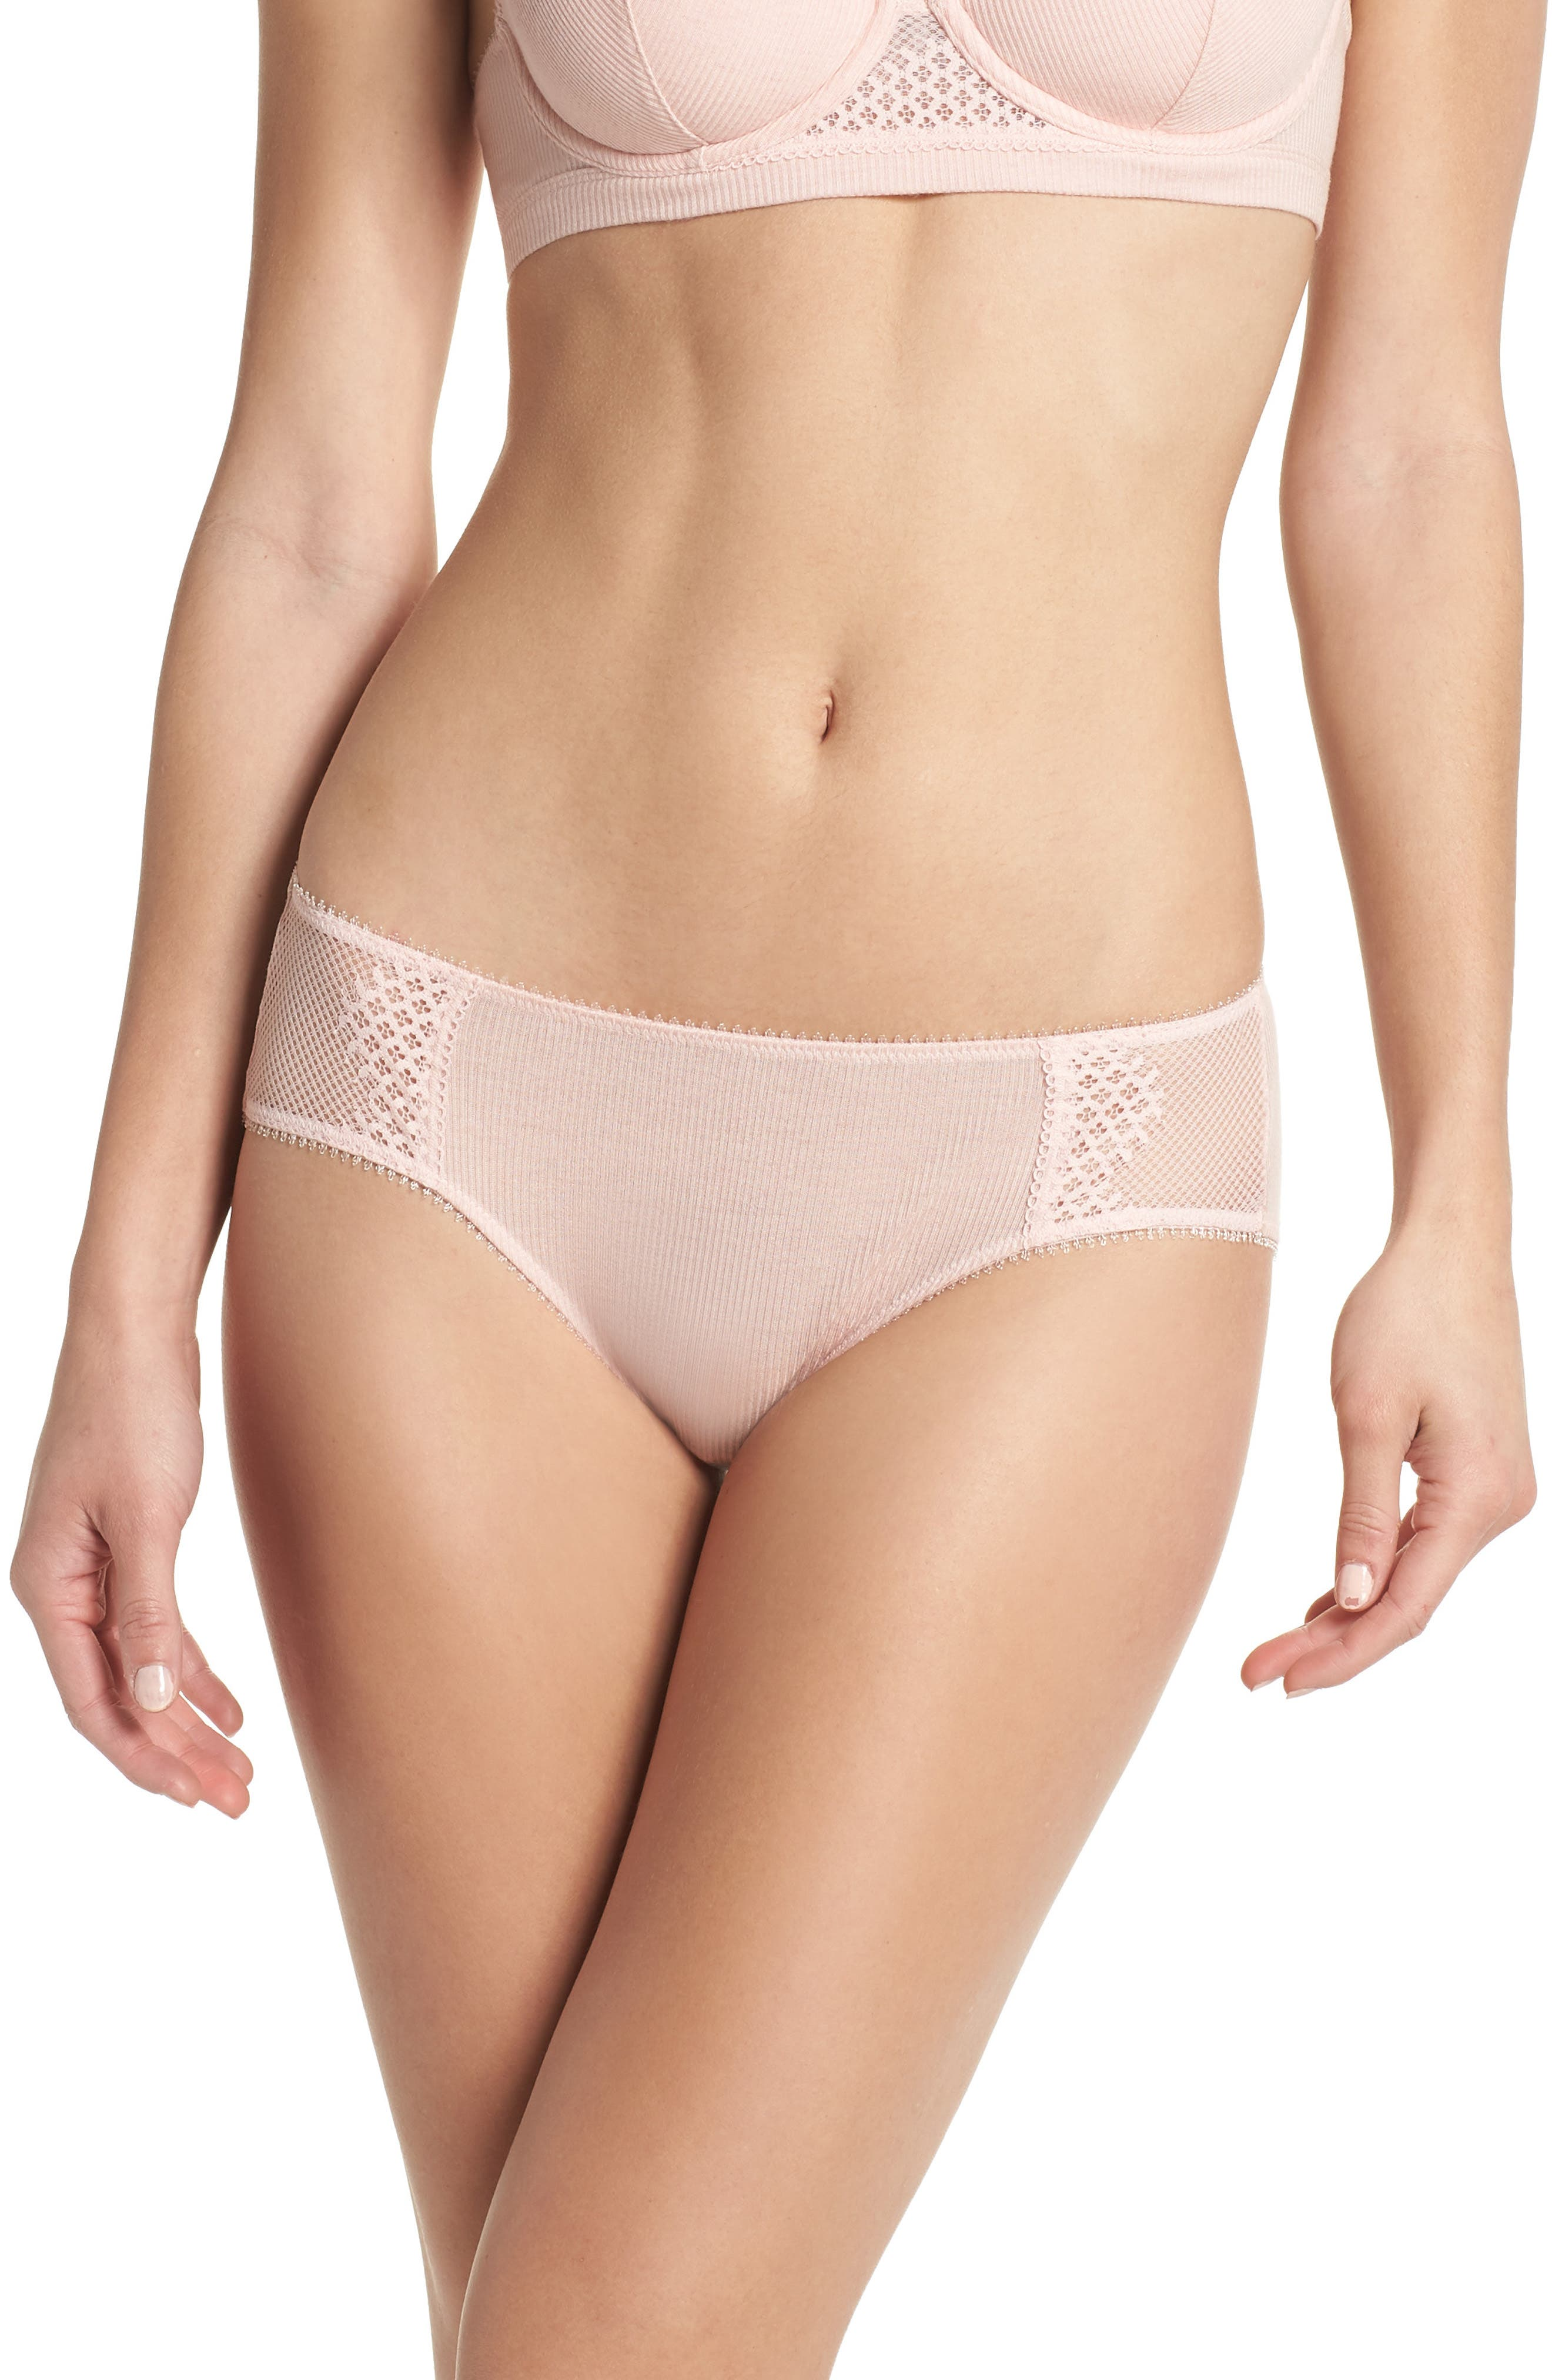 Low Rise Hipster Panties,                         Main,                         color, Blush